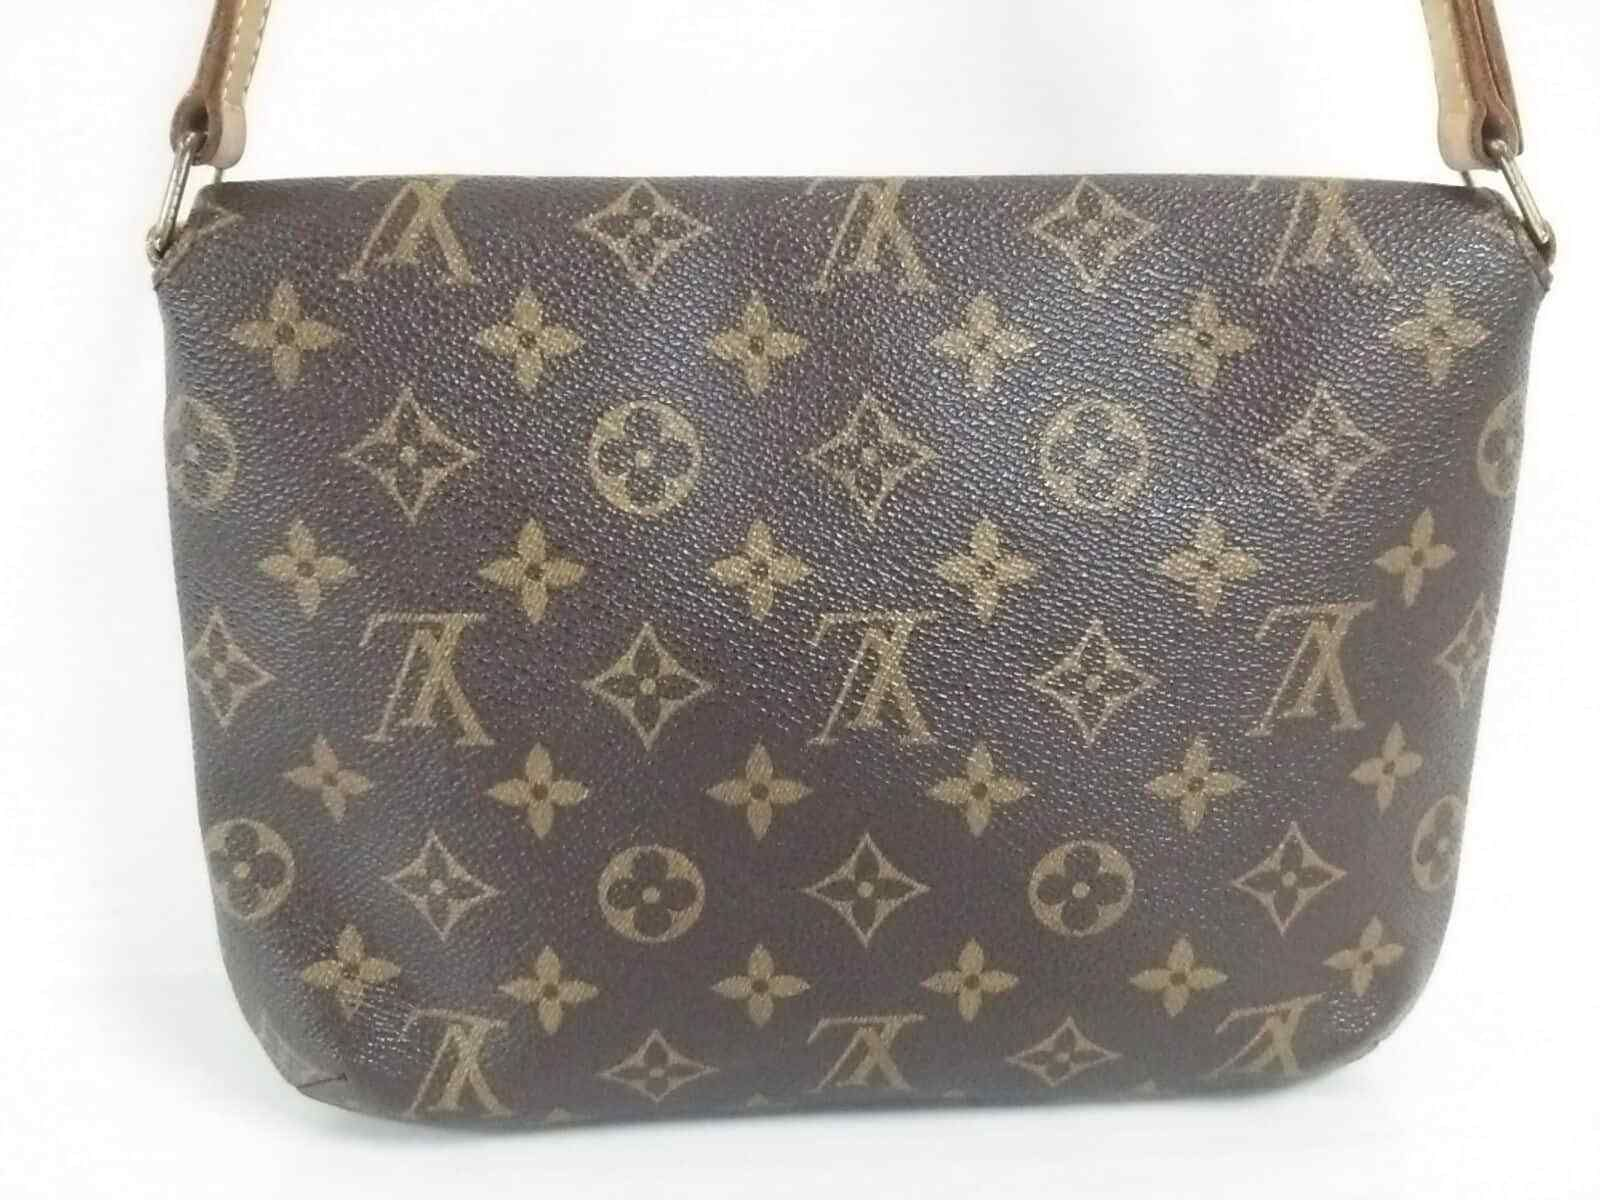 3a53a5293956 Auth LOUIS VUITTON Musette Tango Short Strap M51257 Monogram SP0010  Shoulder Bag  351.0  louis